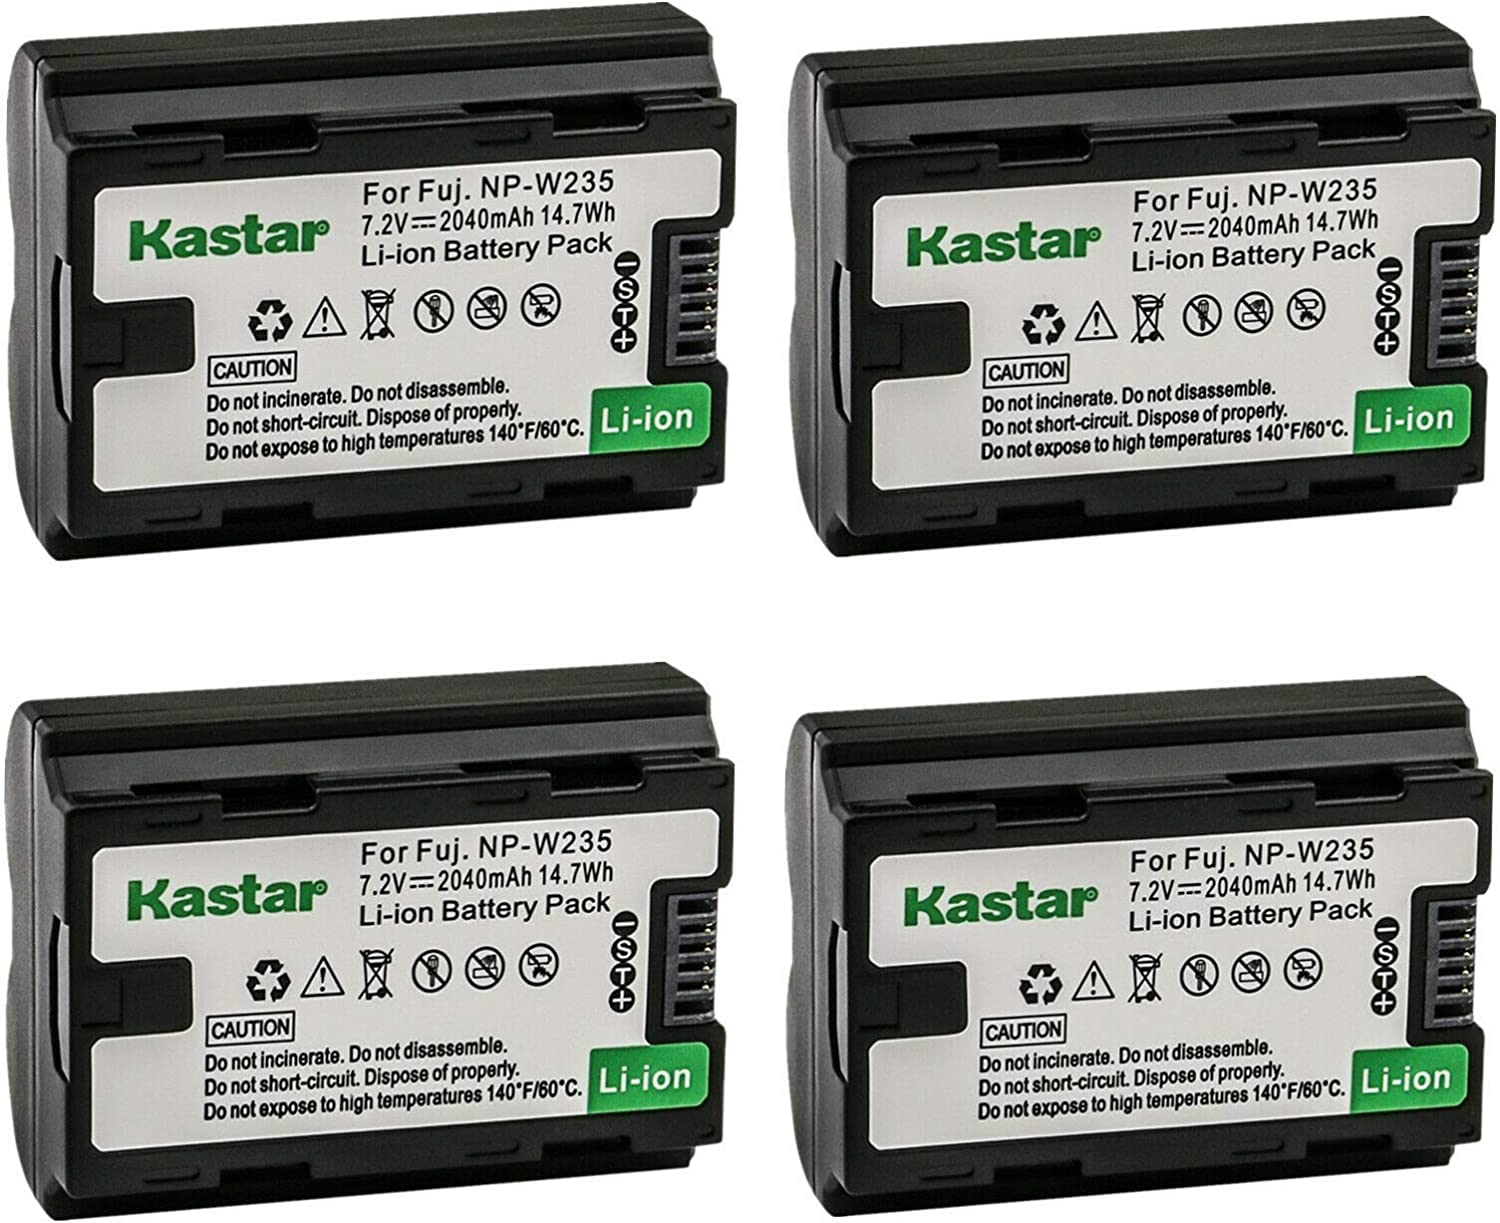 Kastar 4-Pack NP-W235 Battery New arrival N Max 69% OFF Fujifilm Replacement for